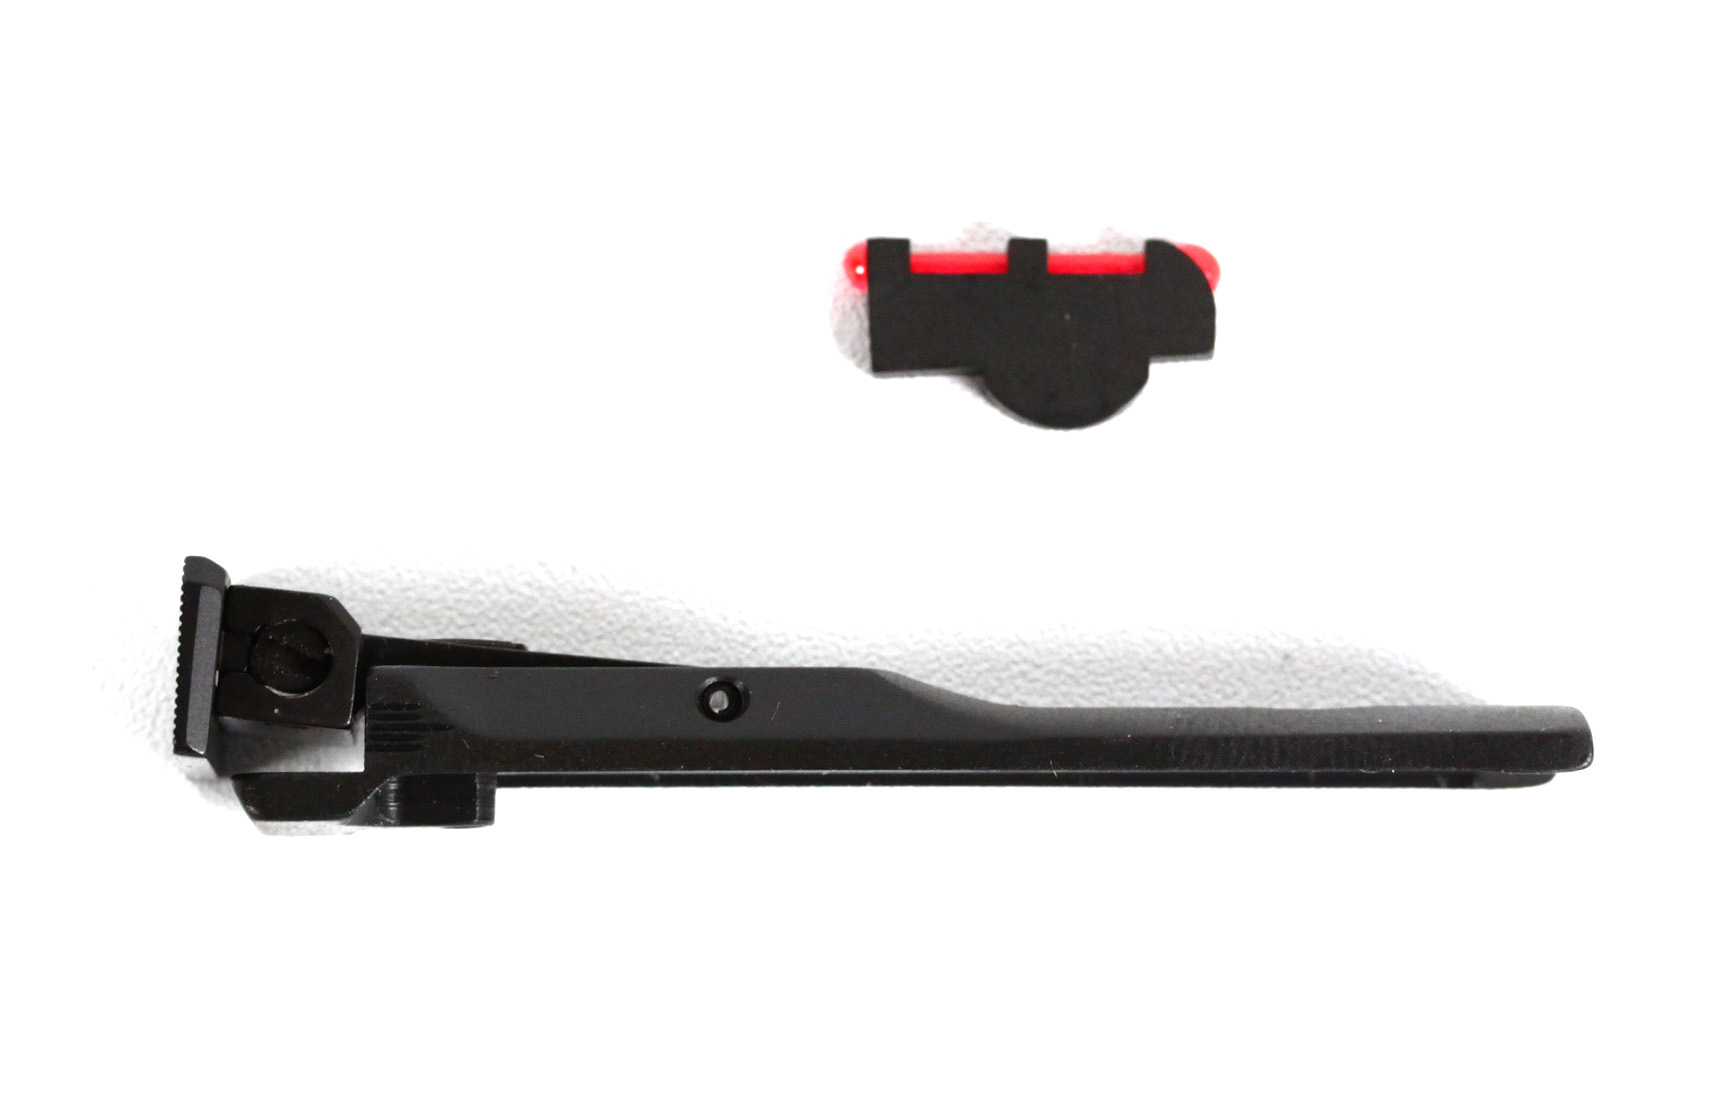 Lpa Txt Target Blade Rear Sight Fiber With Optic Front